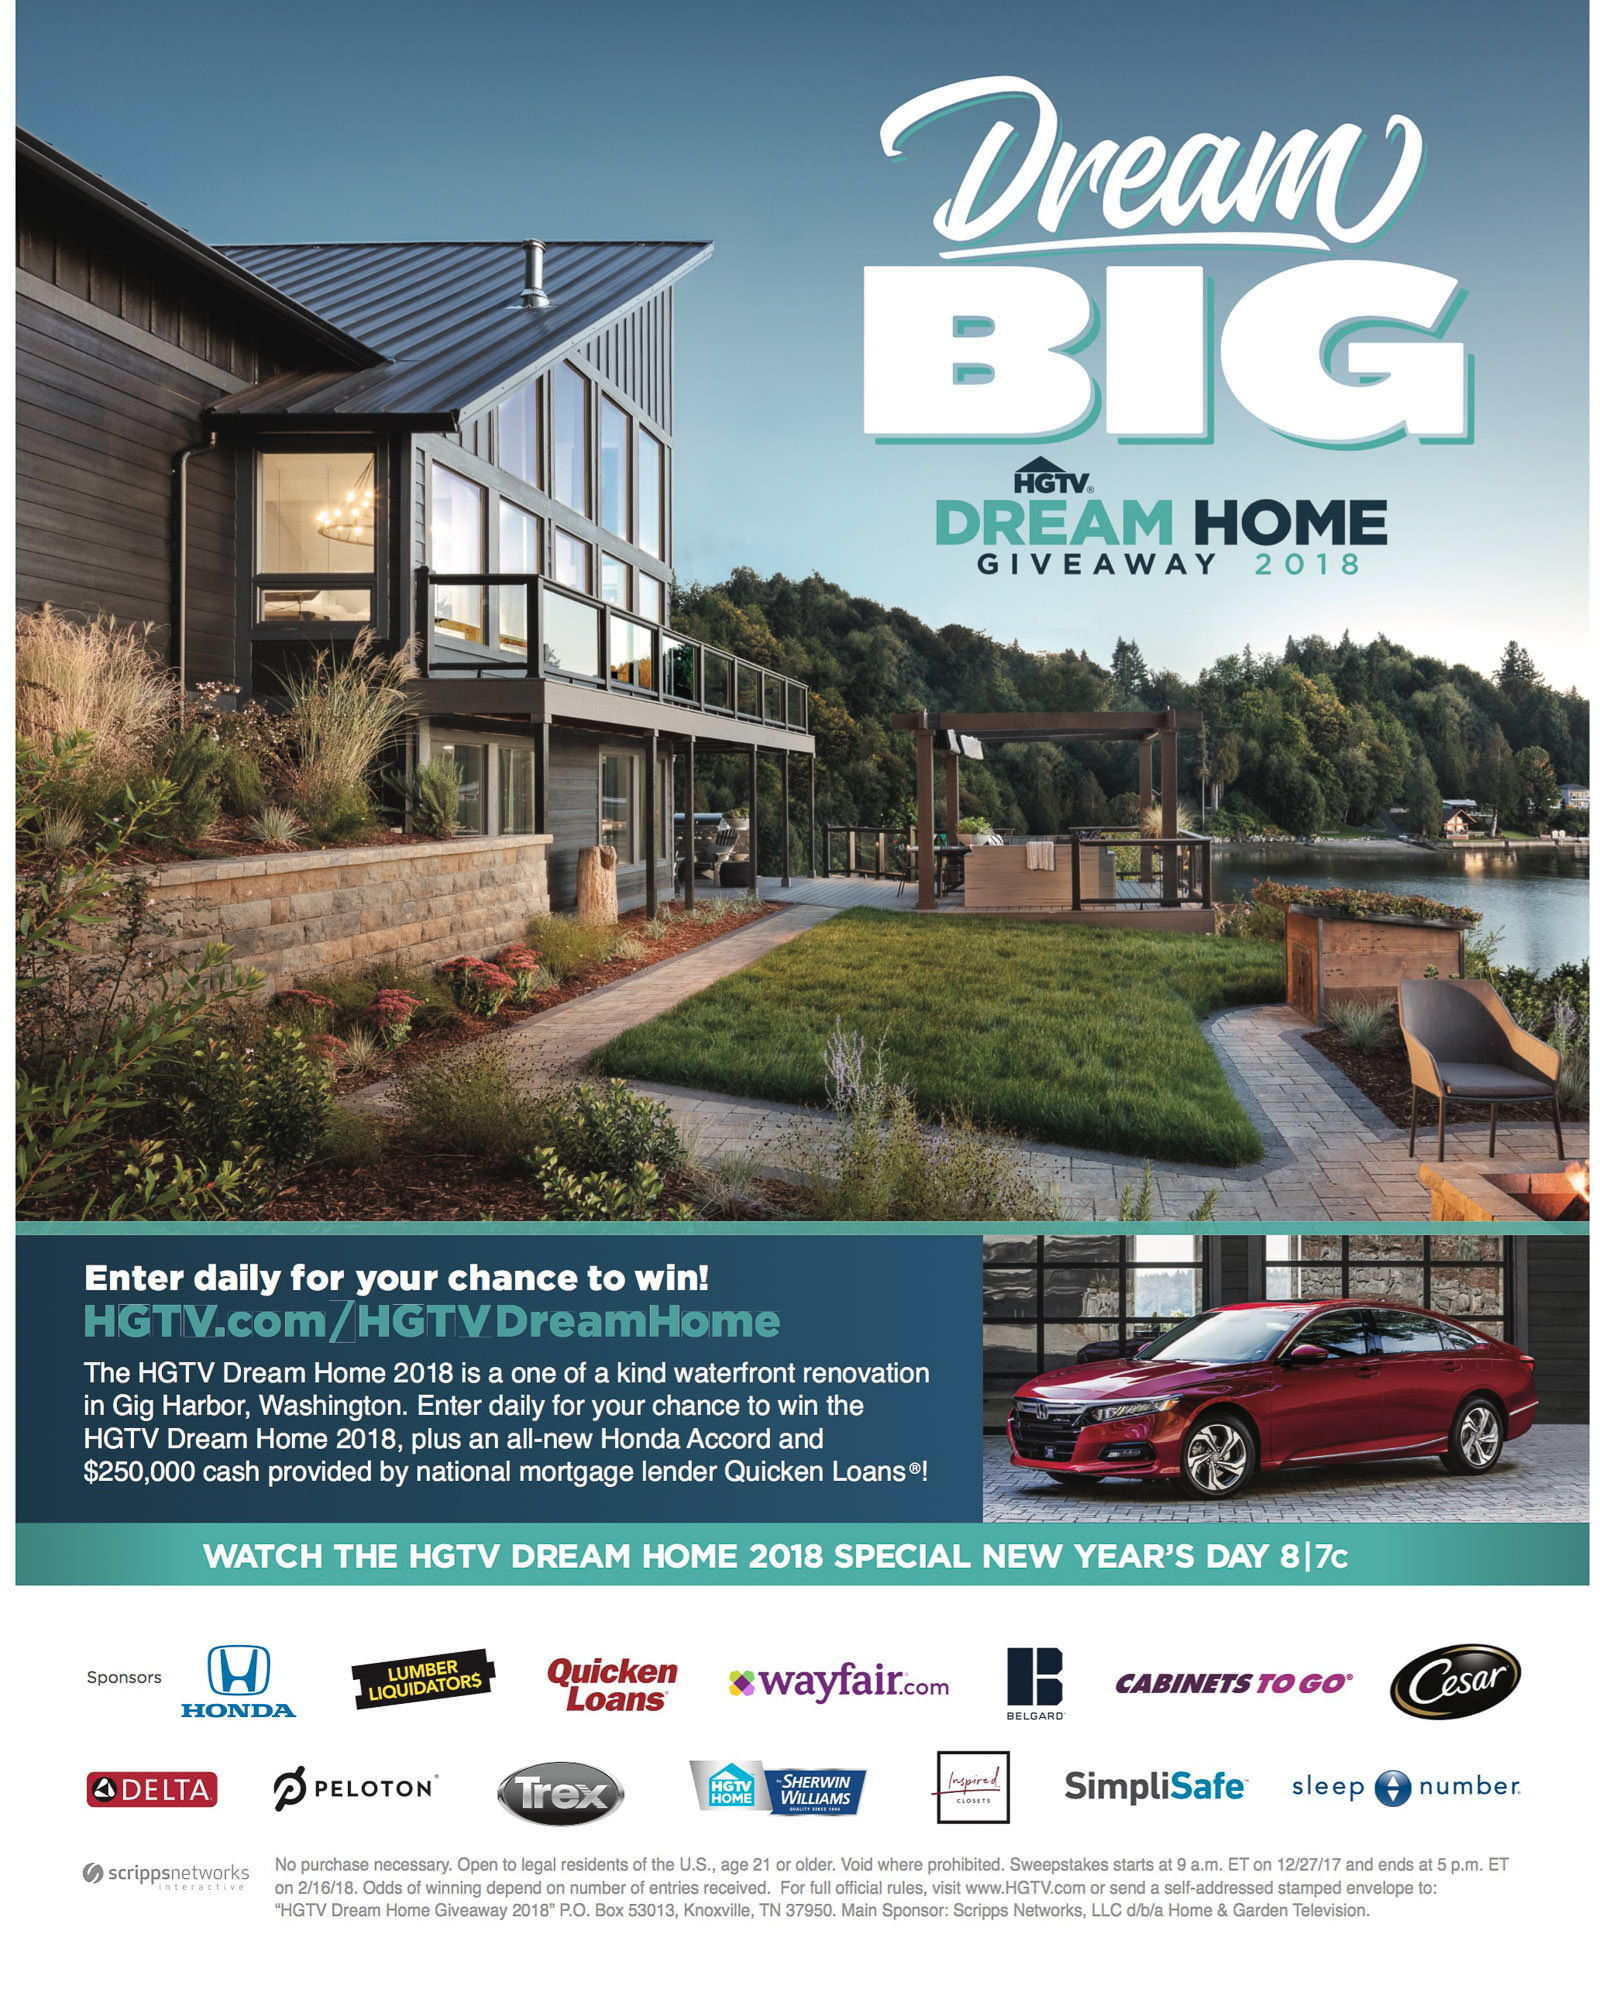 HGTV: Dream Home Giveaway 2018